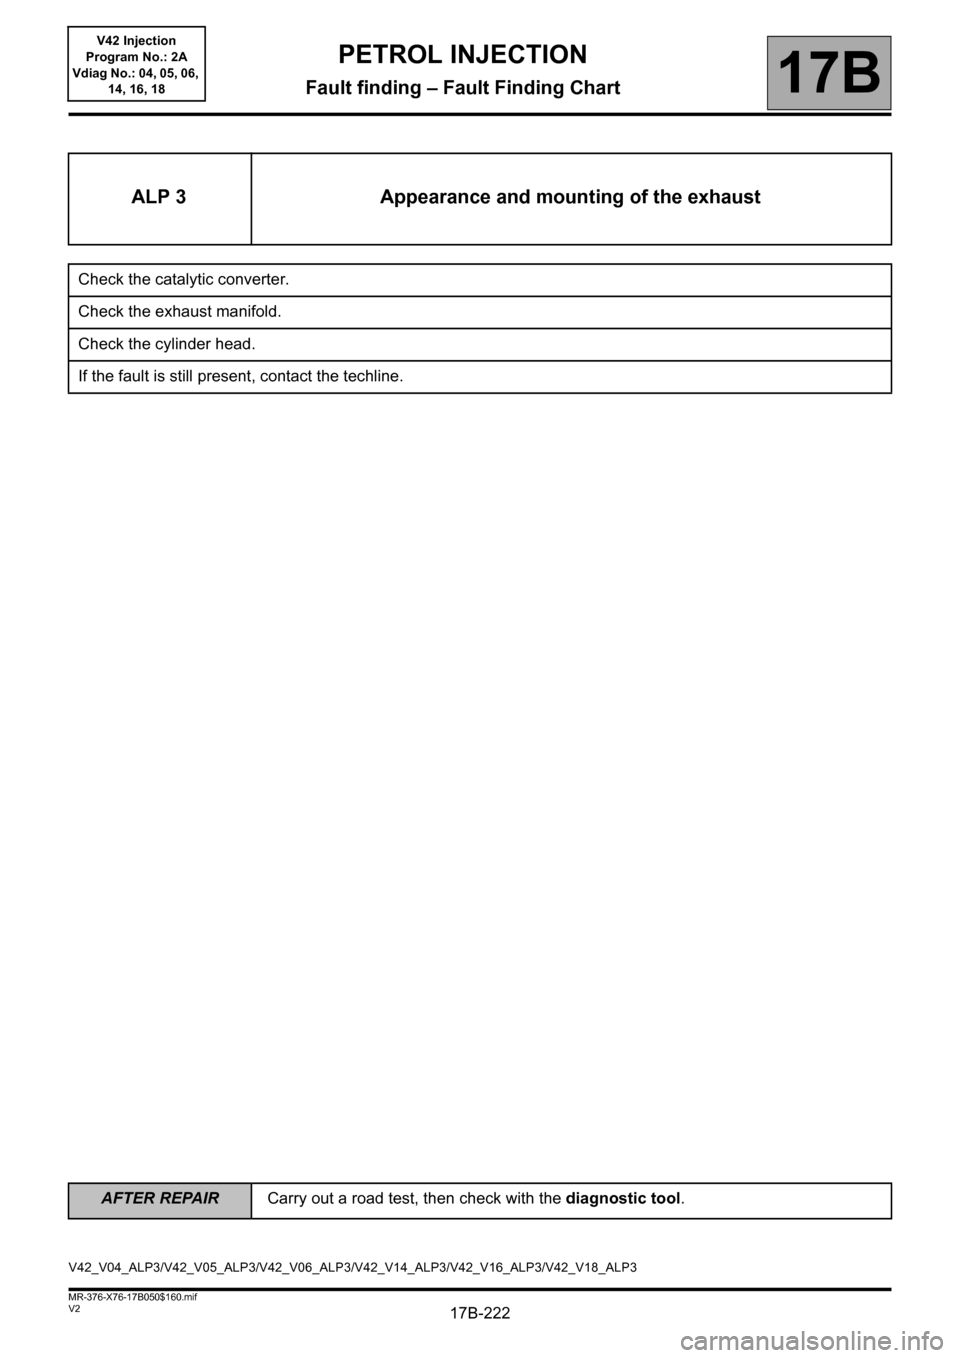 RENAULT KANGOO 2013 X61 / 2.G Petrol V42 Injection Workshop Manual, Page 222